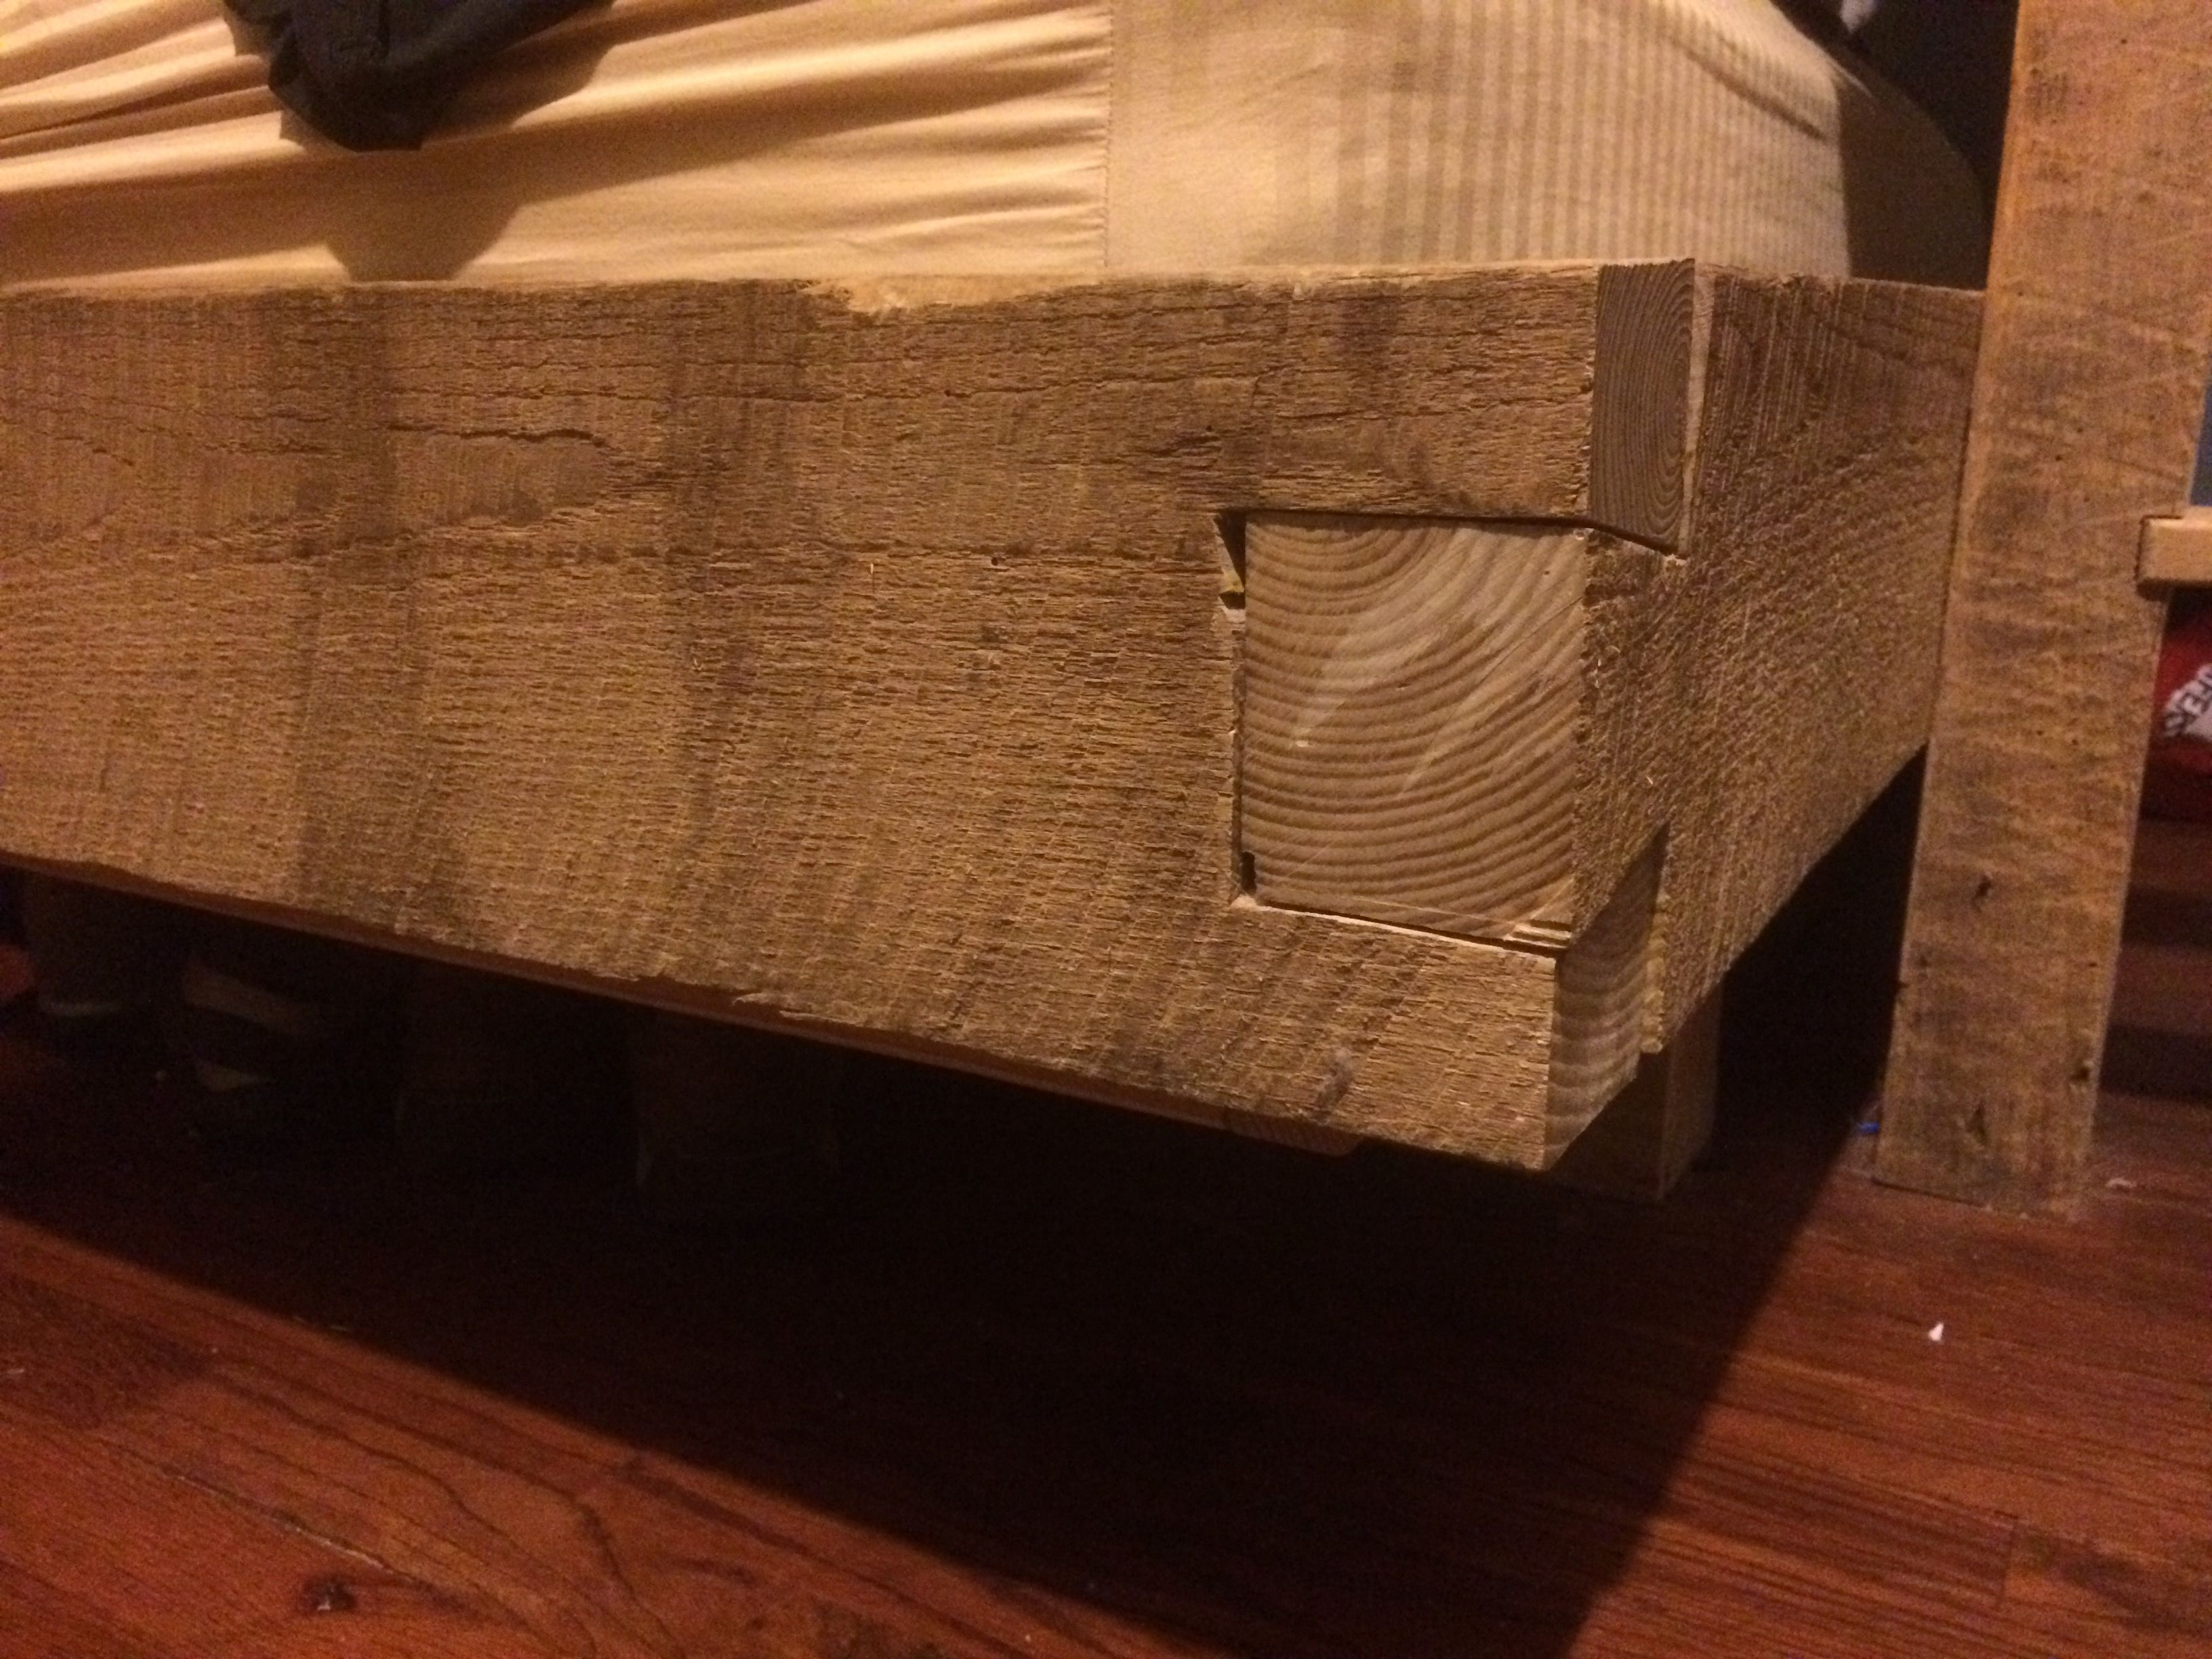 Large Dovetail Joint On Built In Barn Timber Queen Bed Frame